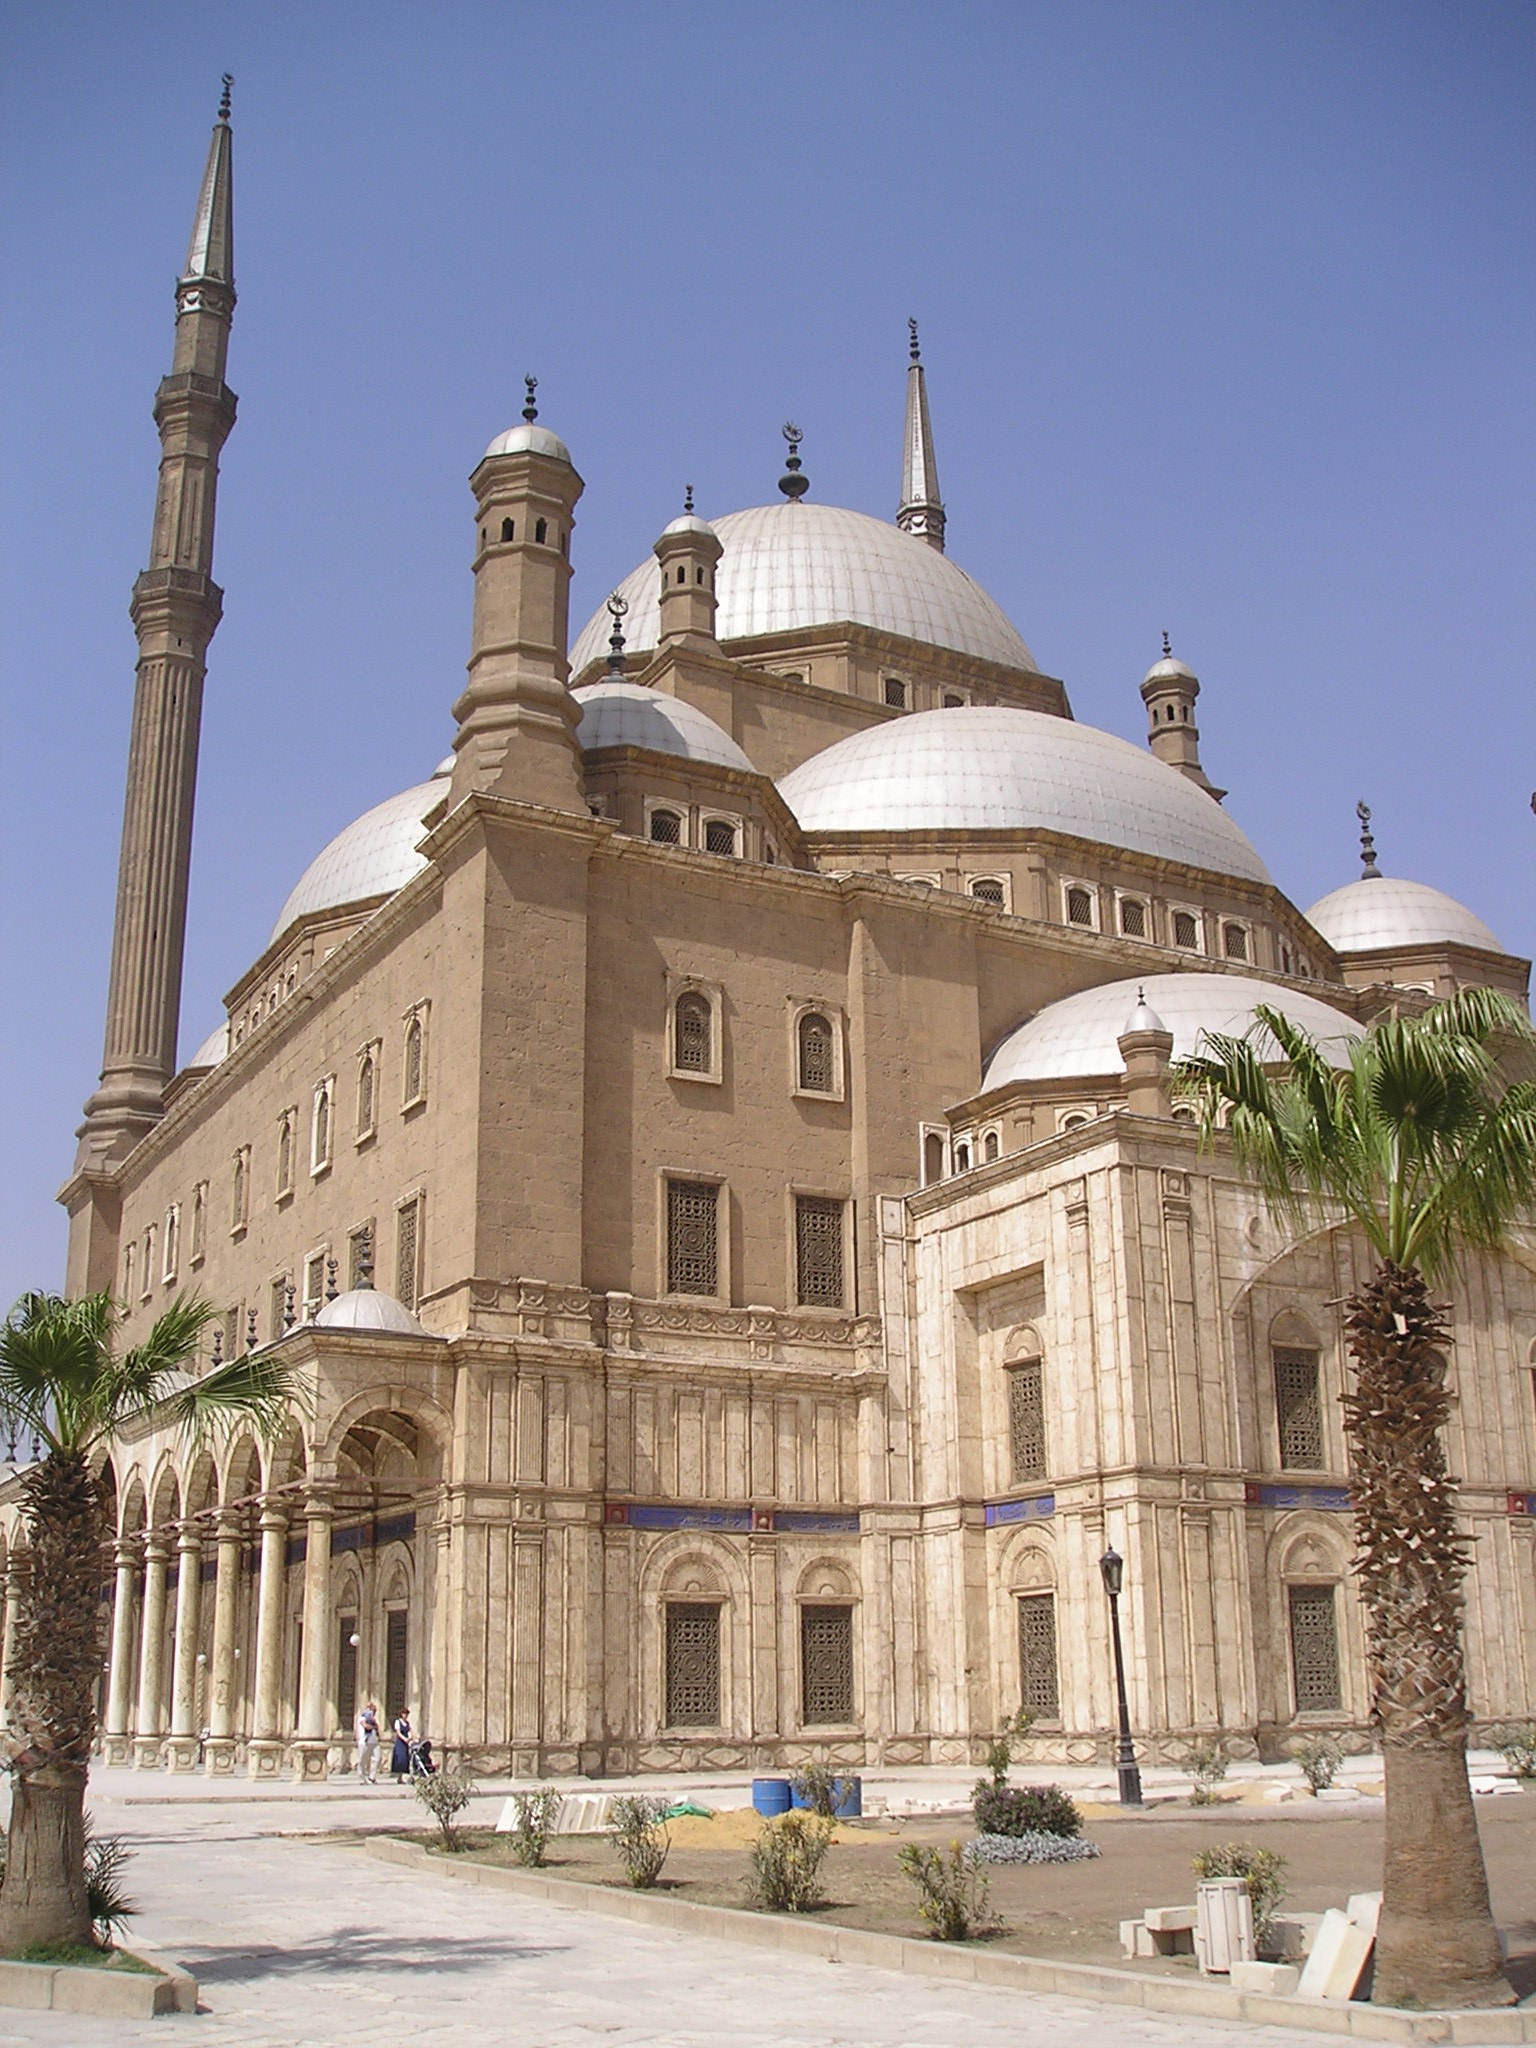 http://upload.wikimedia.org/wikipedia/commons/2/25/Mosque_of_An-Nasir_Mohammed_in_Cairo.jpg